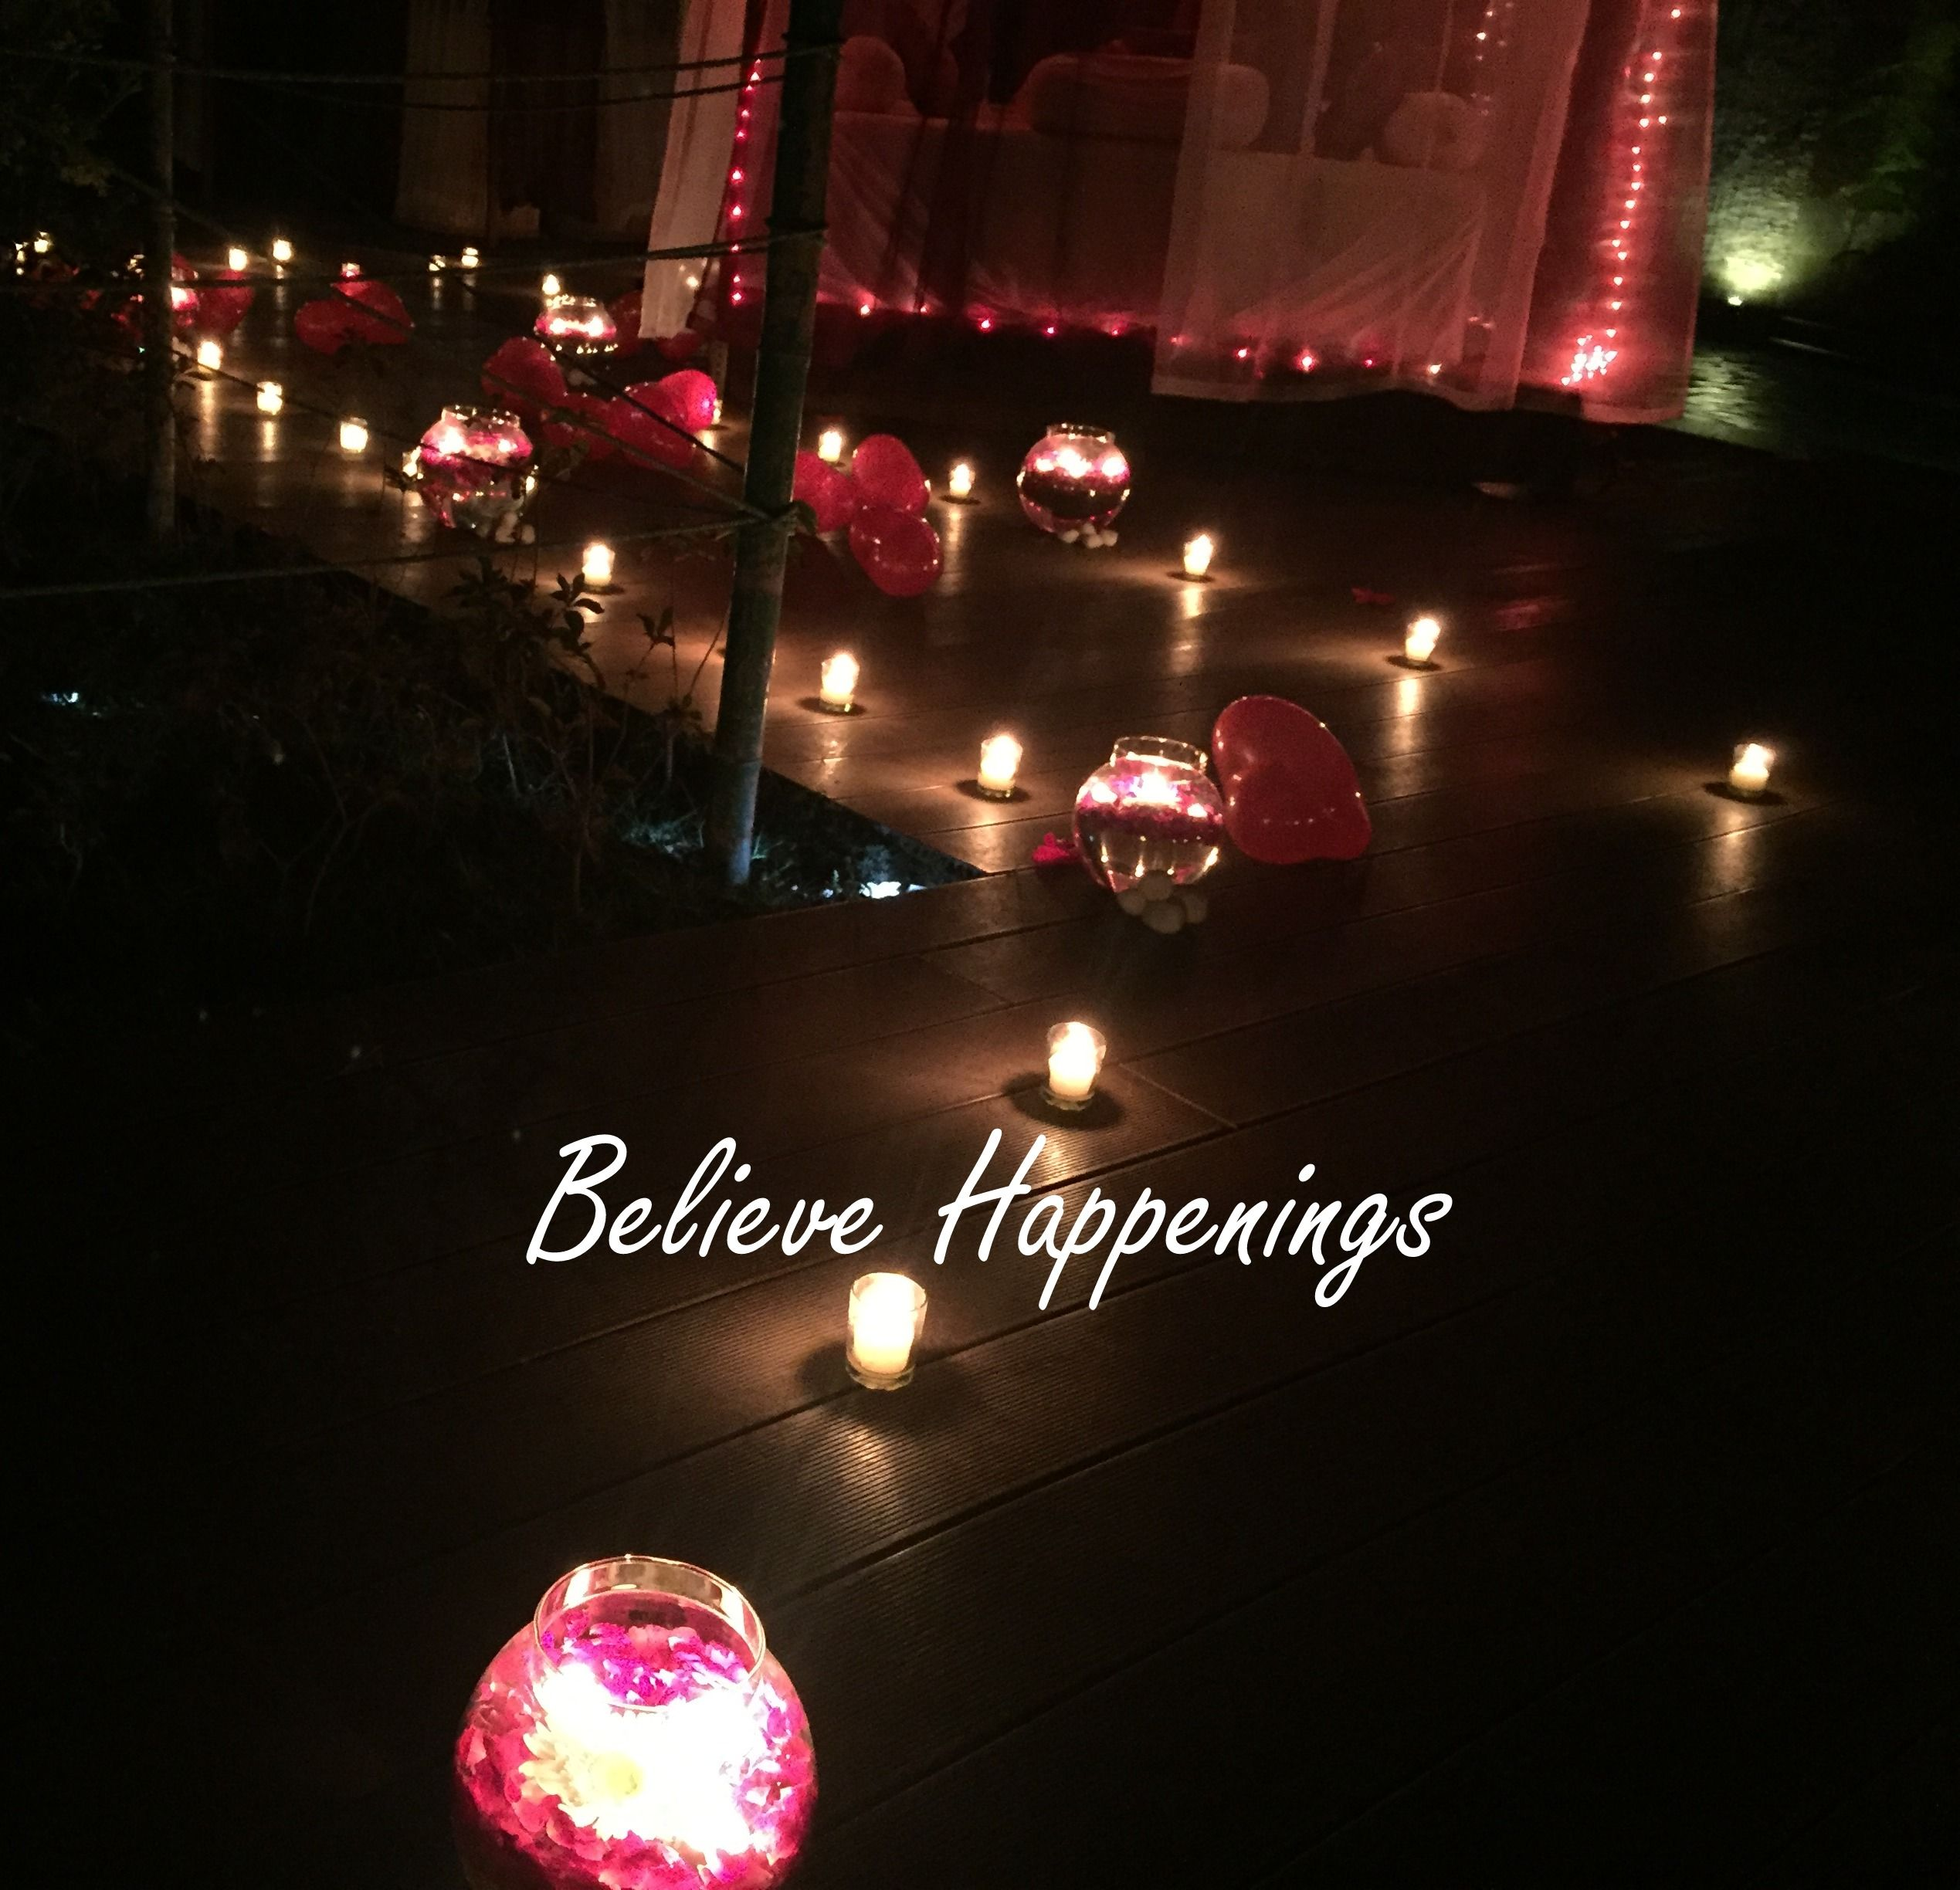 Candle light dinner. Date set up ‪#‎believehappenings‬ ‪#‎dateplanners‬ ‪#‎weddings‬ ‪#‎themeweddings‬ ‪#‎themeweddingsinudaipur‬ ‪#‎dates‬ ‪#‎love‬ ‪#‎themes‬ ‪#‎themeparties‬ ‪#‎udaipur‬ ‪#‎events‬ ‪#‎eventplanners‬ ‪#‎decor‬